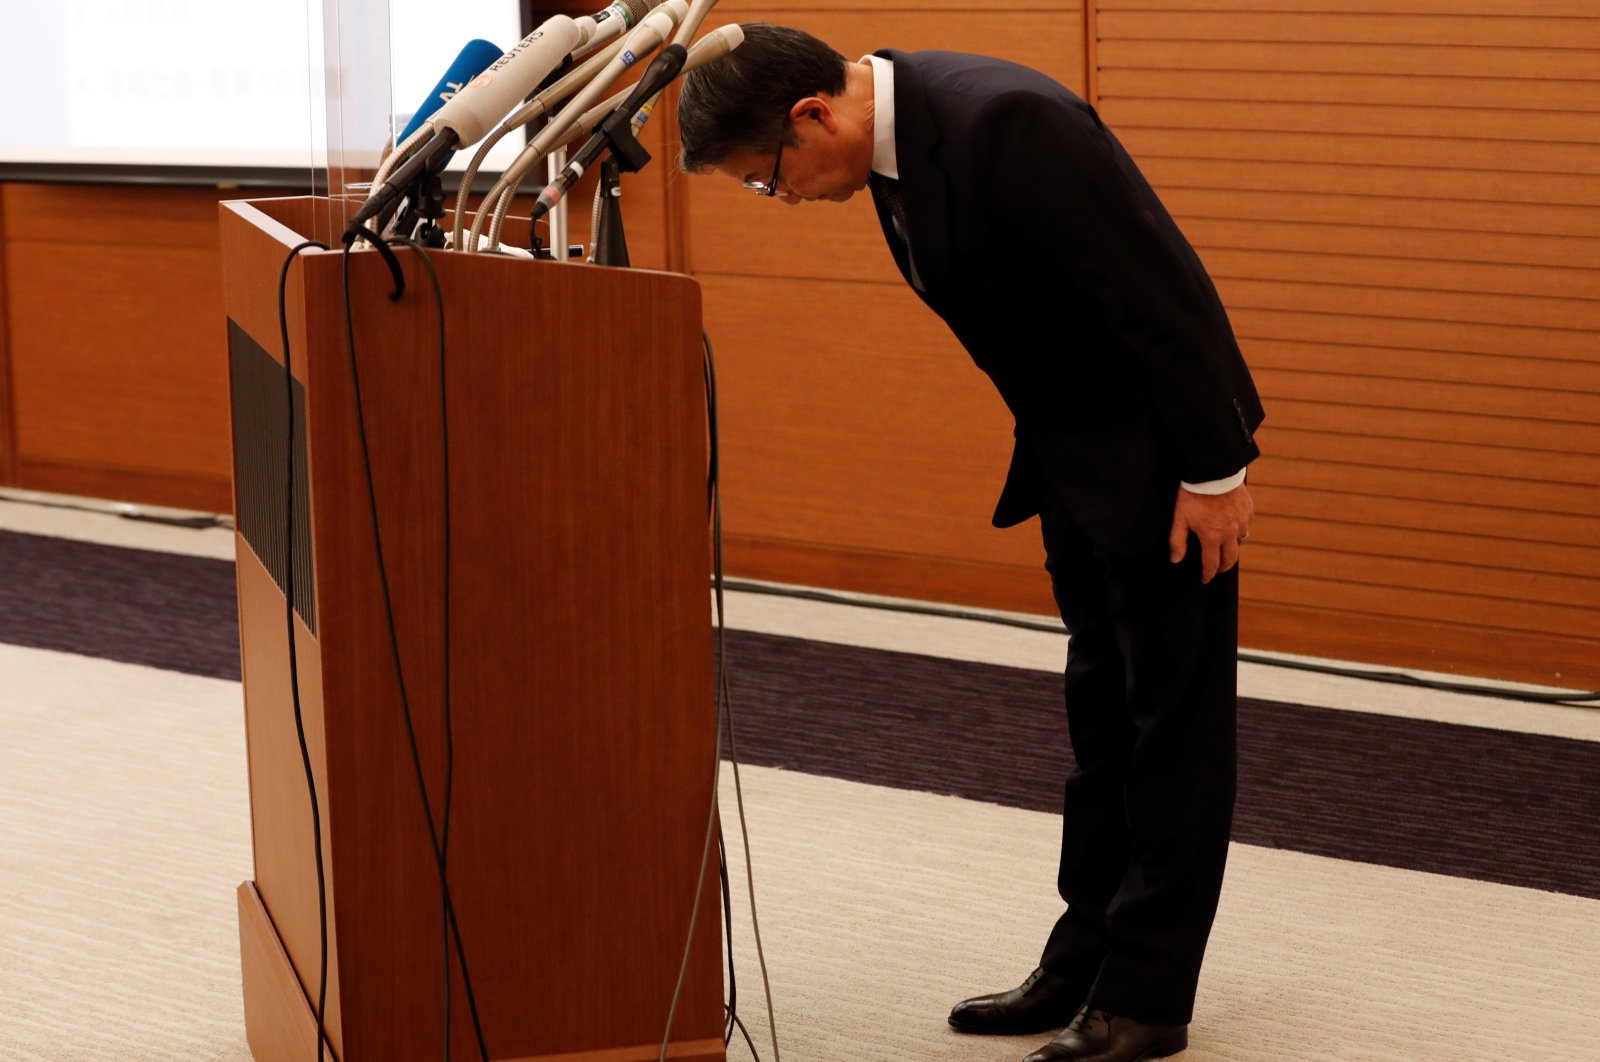 Mitsui O.S.K. Lines President and Chief Executive Officer (CEO) Junichiro Ikeda bows his head to apologize during a news conference about its measures to help recover environment and provide contributions to local communities after the MV Wakashio, chartered by the shipping company, ran aground on a reef in Mauritius in July, at his headquarters in Tokyo, Japan September 11, 2020. (Reuters Photo)